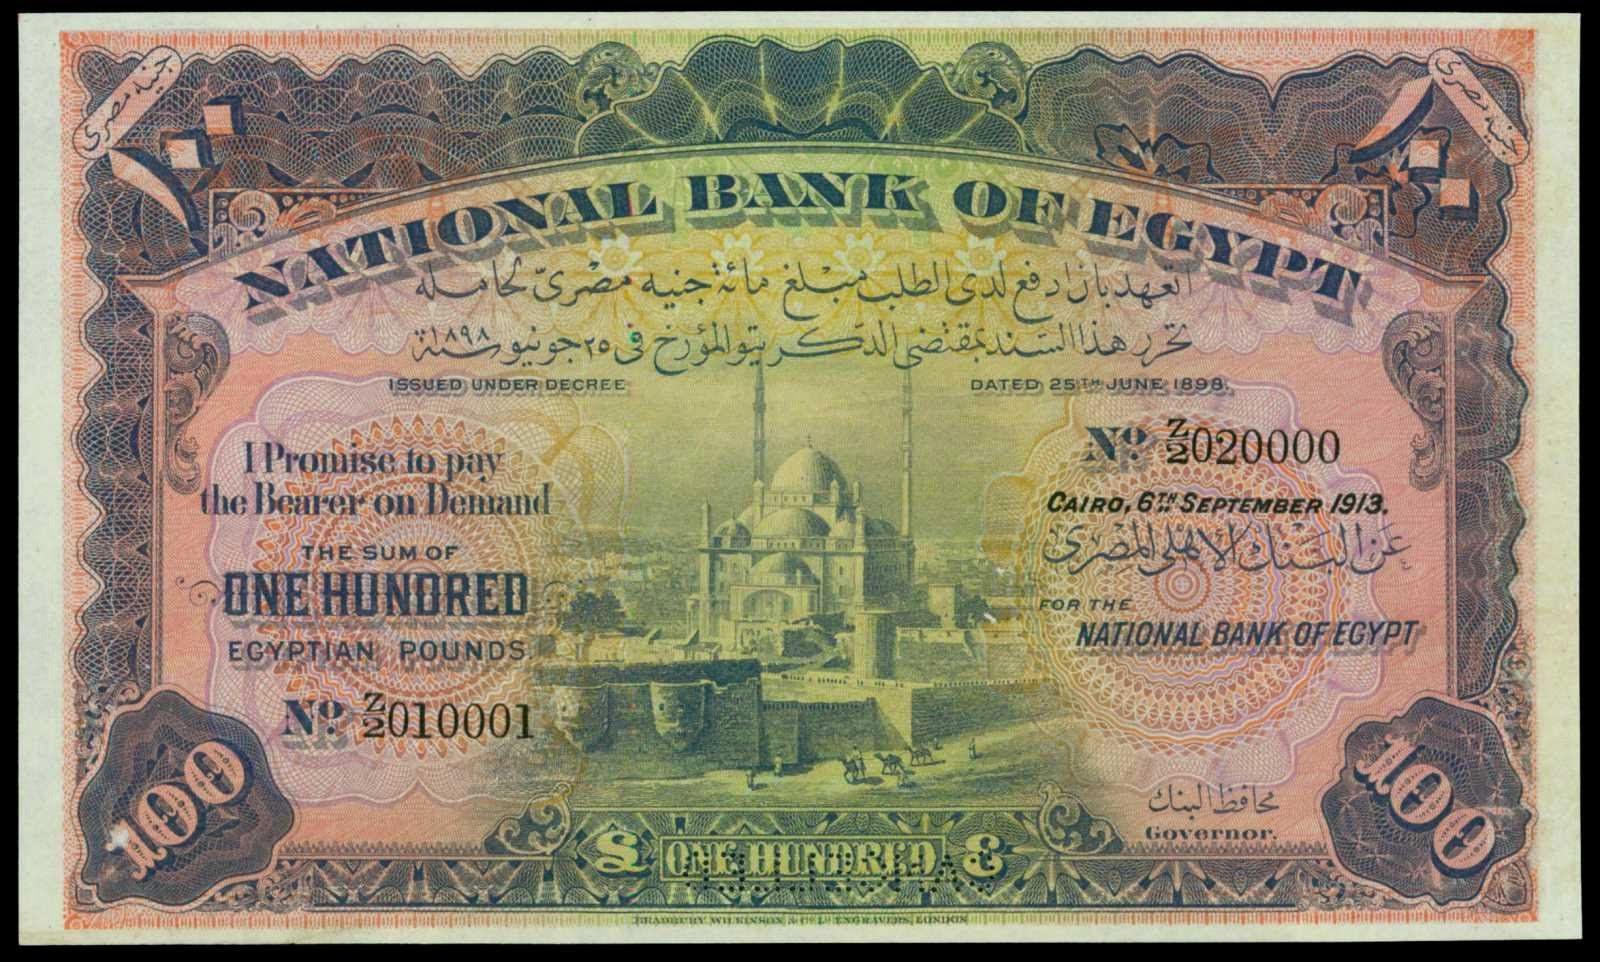 Pin By Dror K On Interesting Banknotes In 2020 Egypt Bank Notes Egyptian Pound